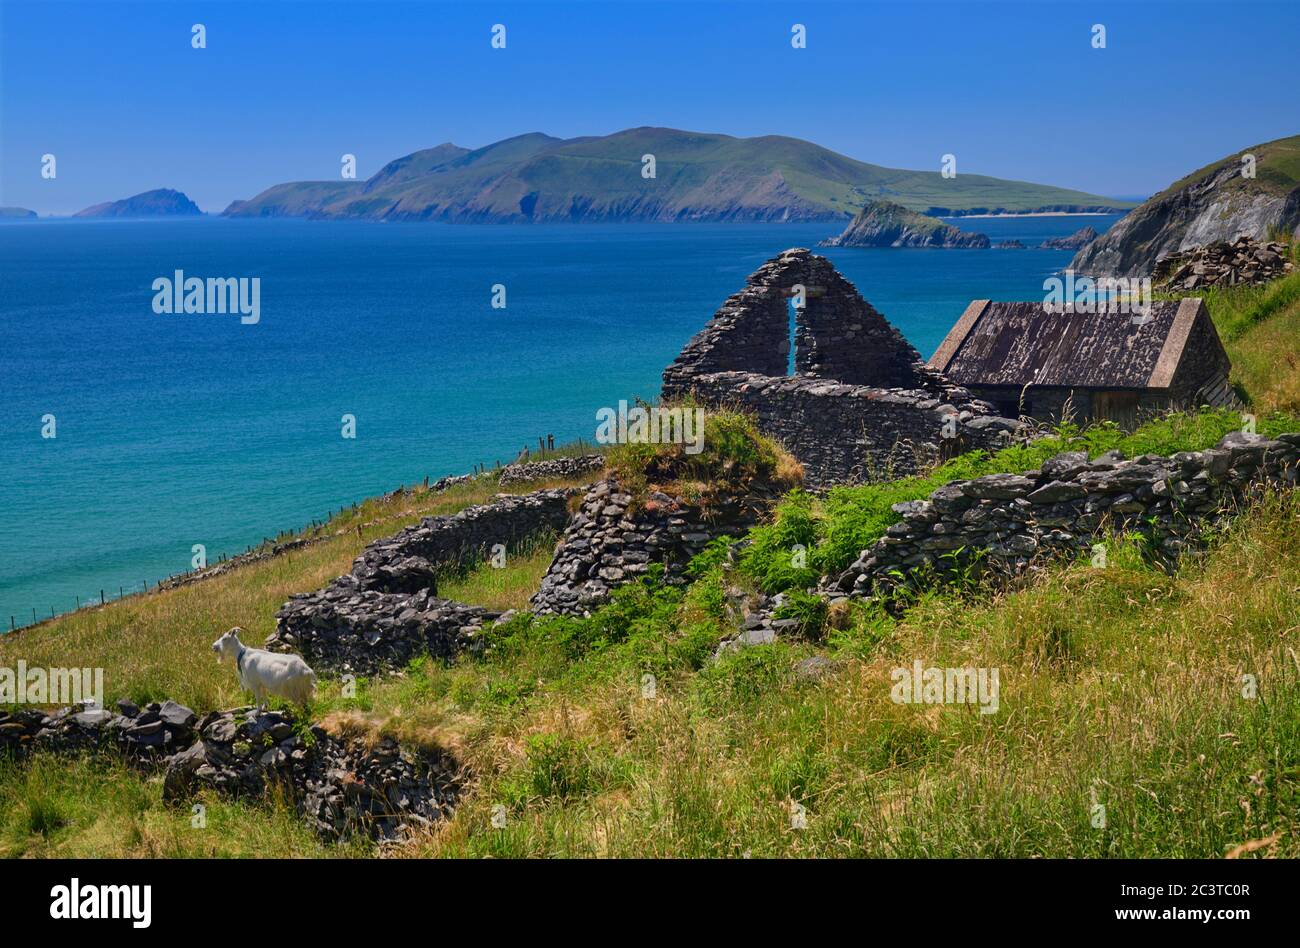 Ireland, County Kerry, Abandoned houses near Slea Head with a tethered goat admiring the view and the Blasket Islands in the background. Stock Photo